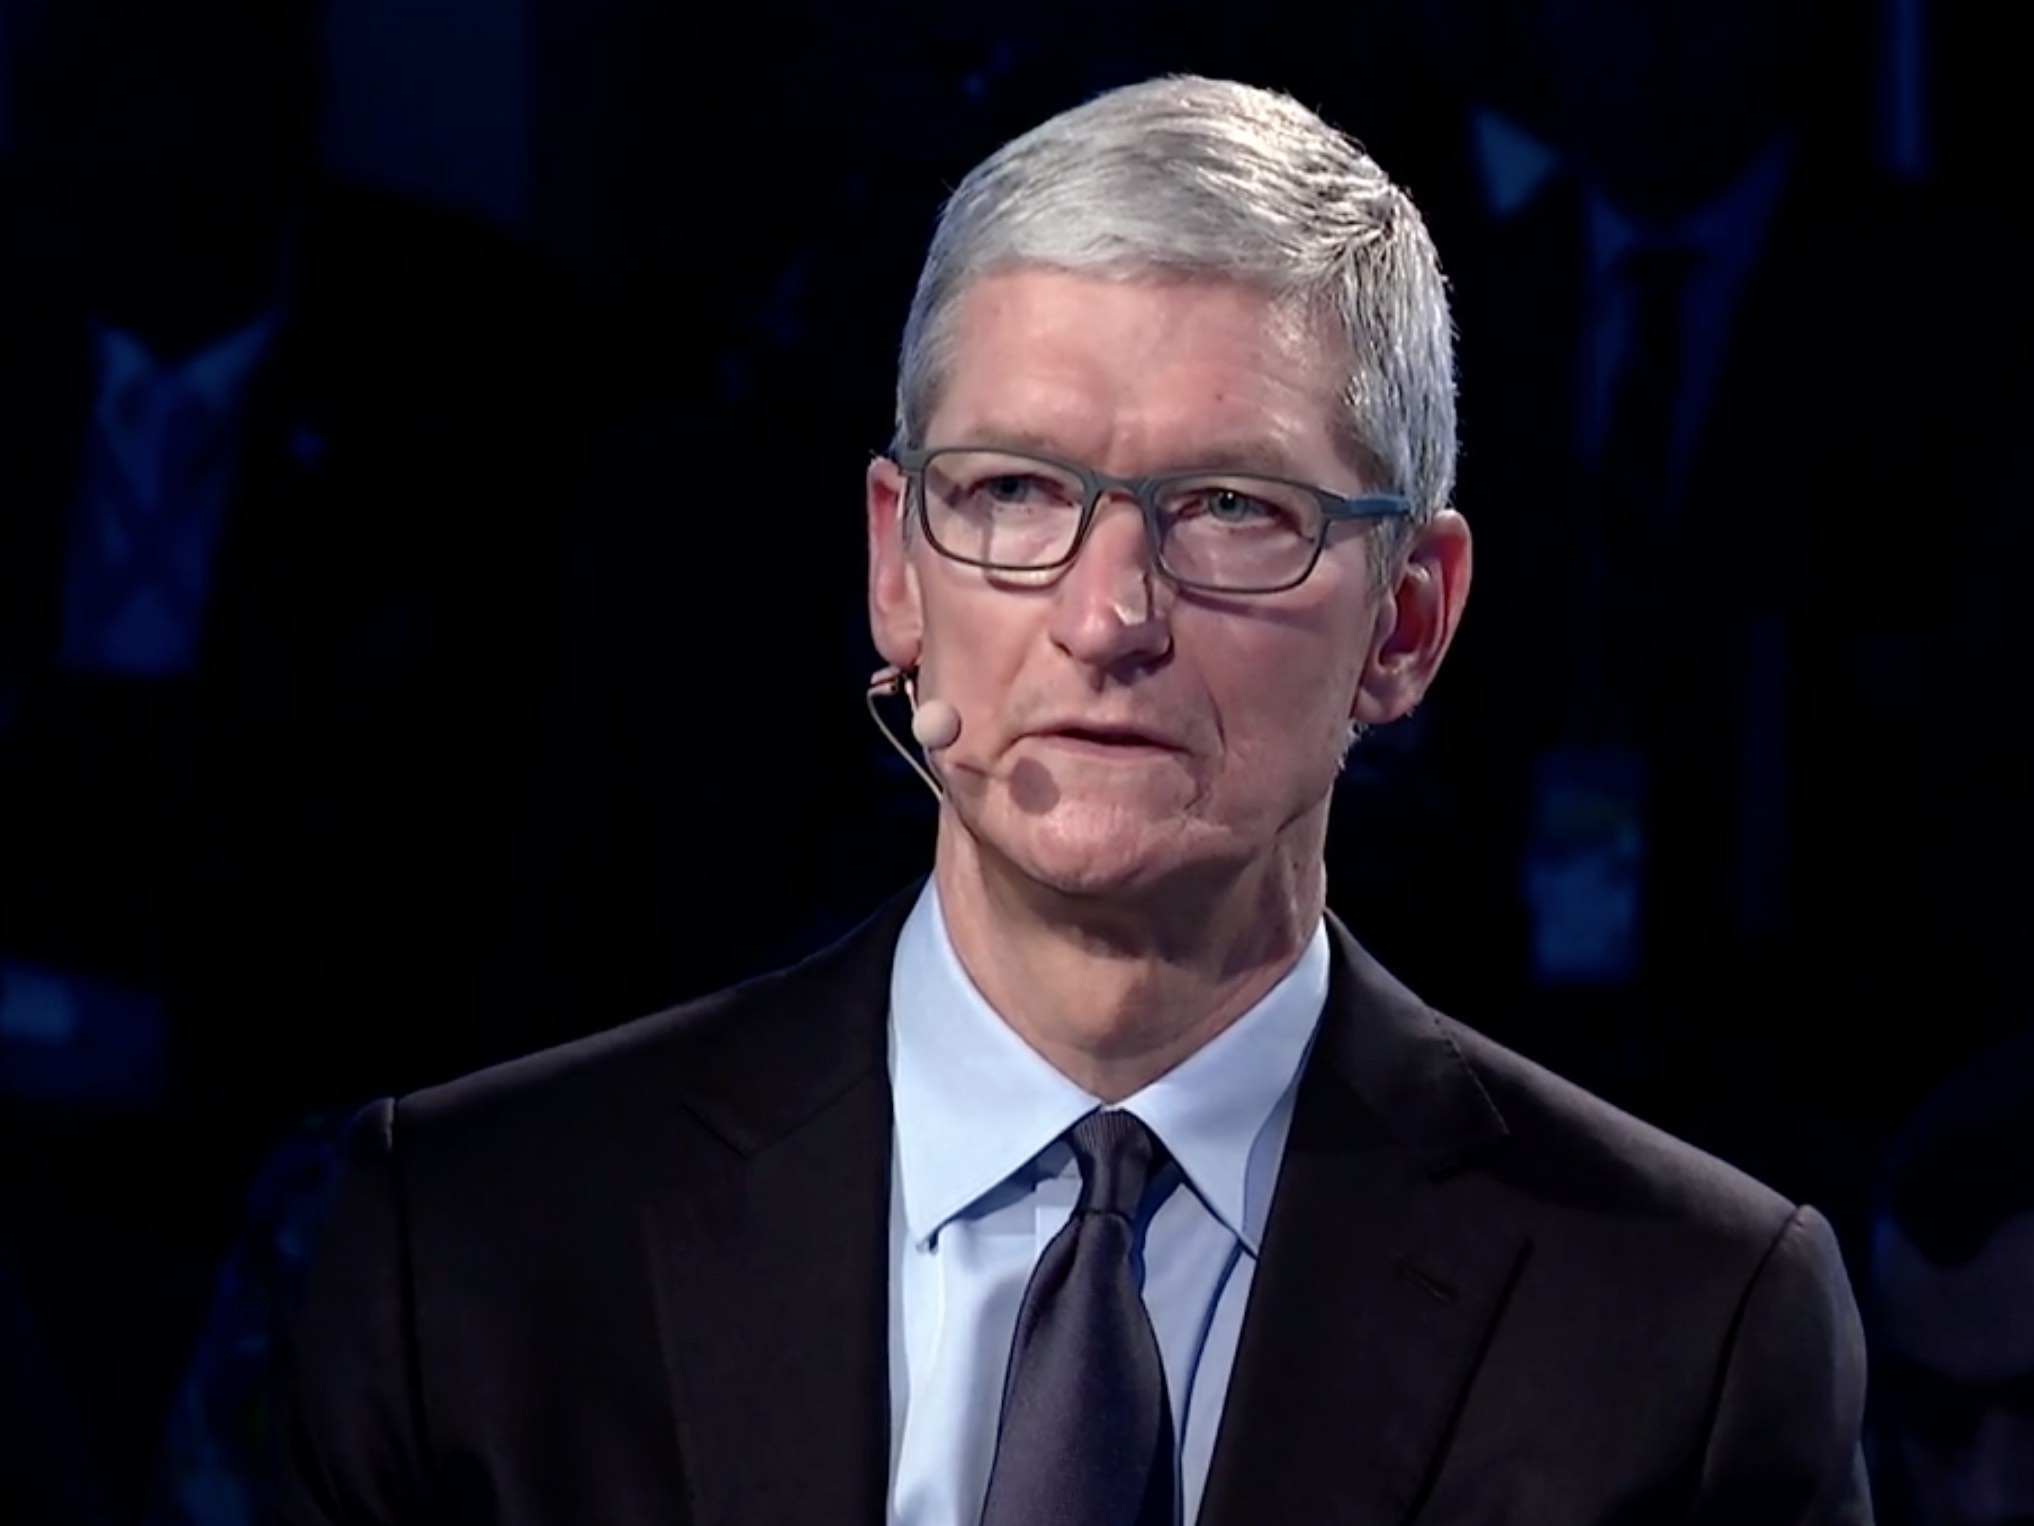 Apple CEO Tim Cook onstage at Bloomberg Global Business Forum